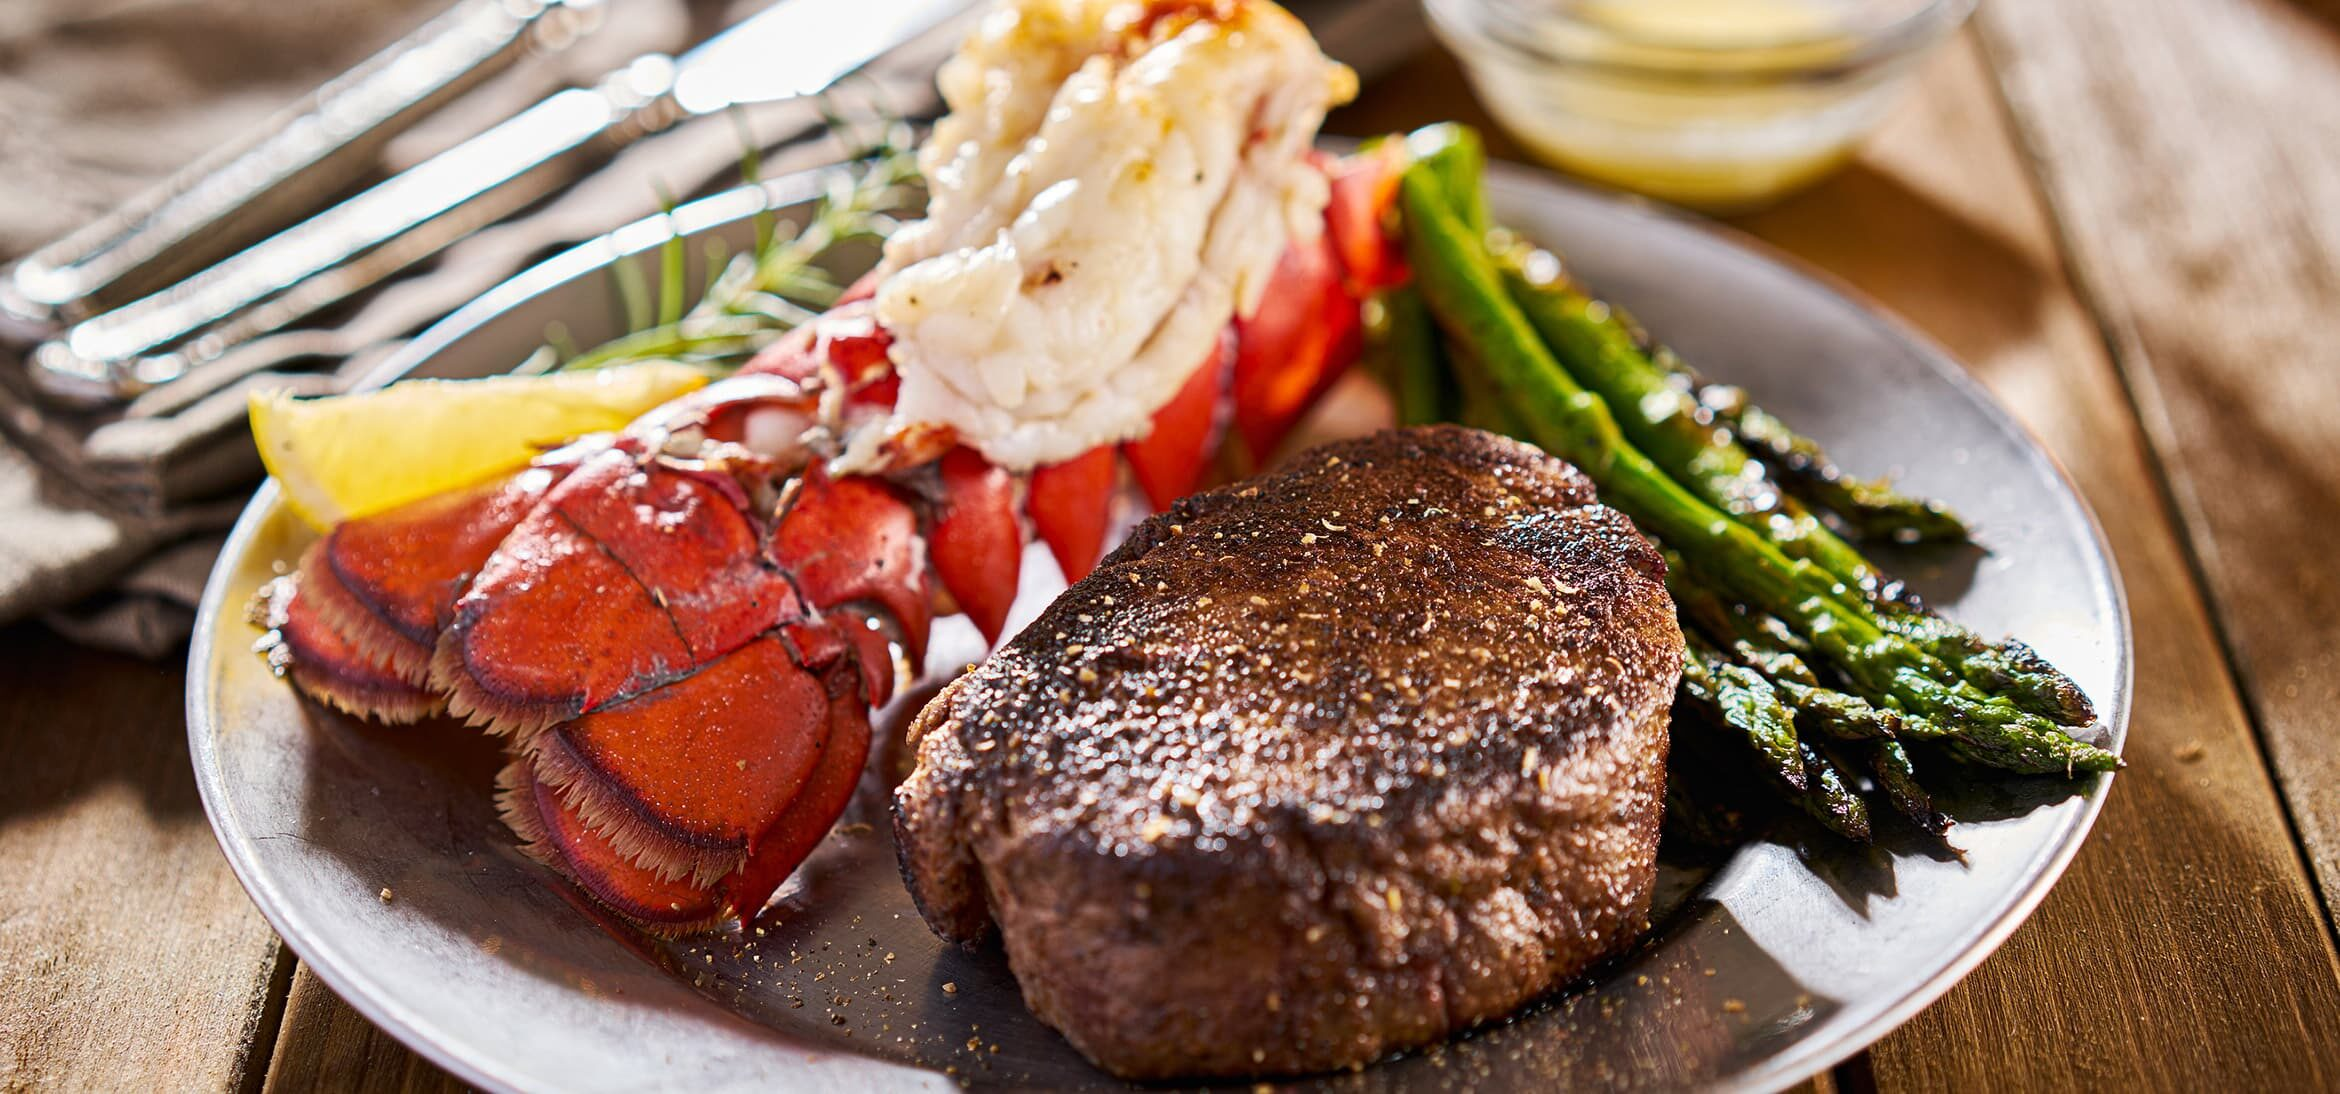 lobster tail and steak dinner